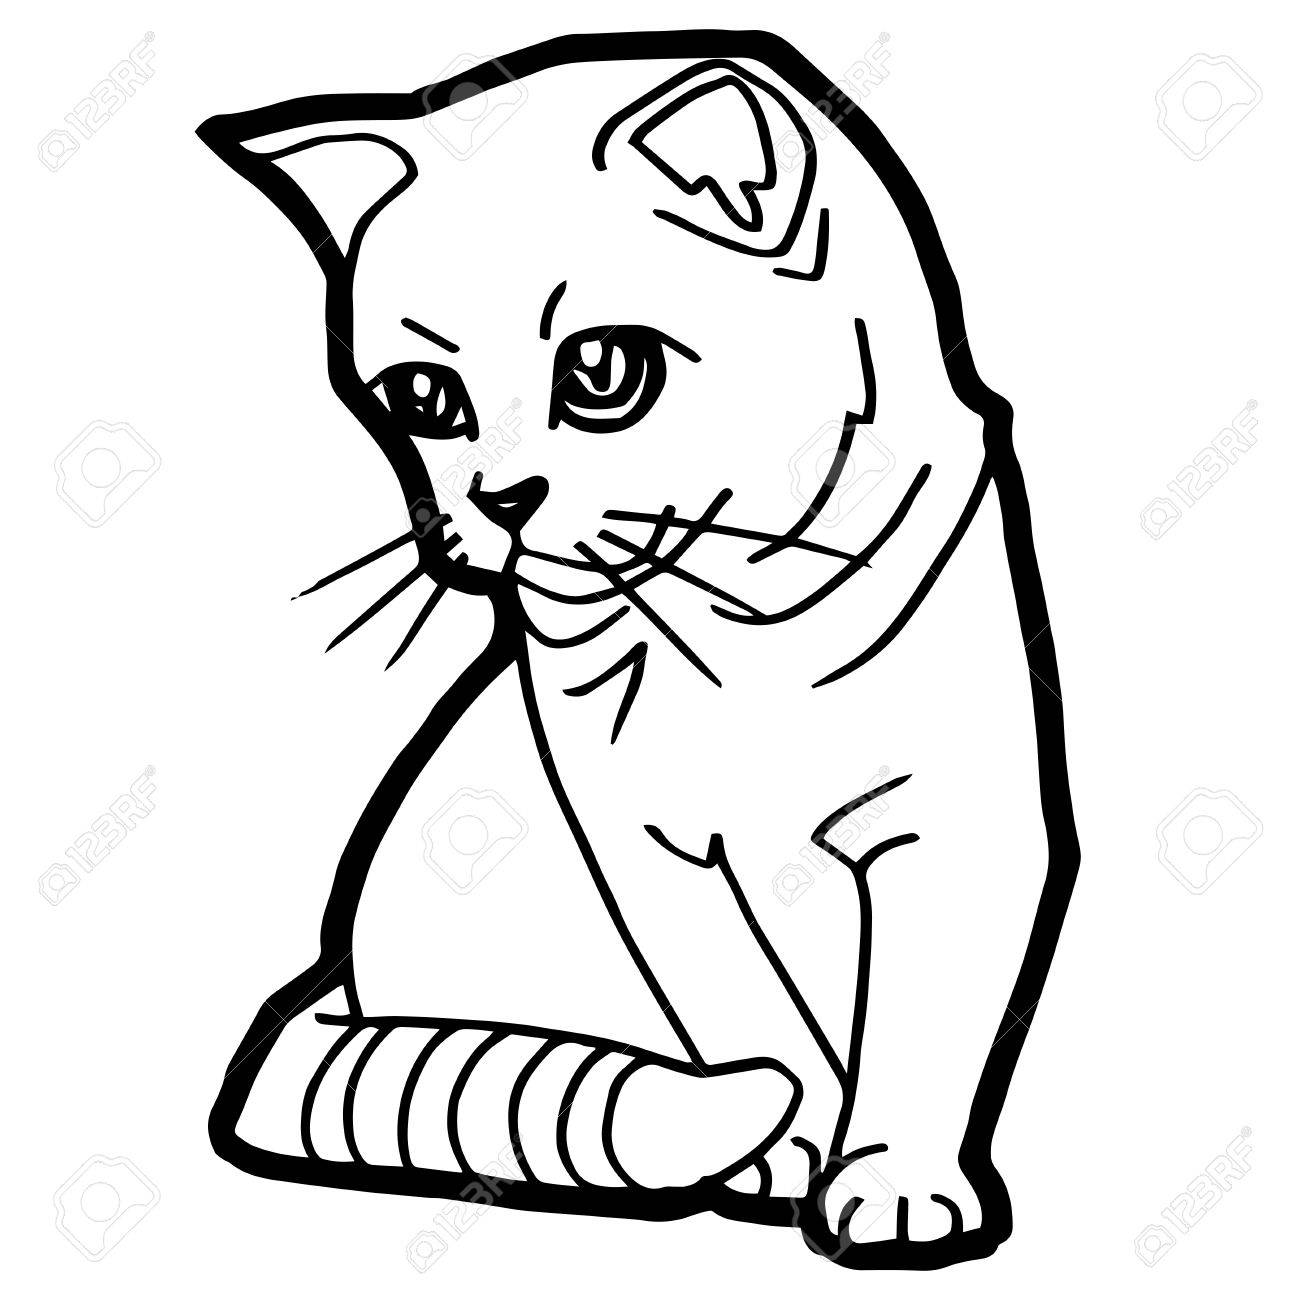 Cat Coloring Page Vector Royalty Free Cliparts, Vectors, And Stock ...